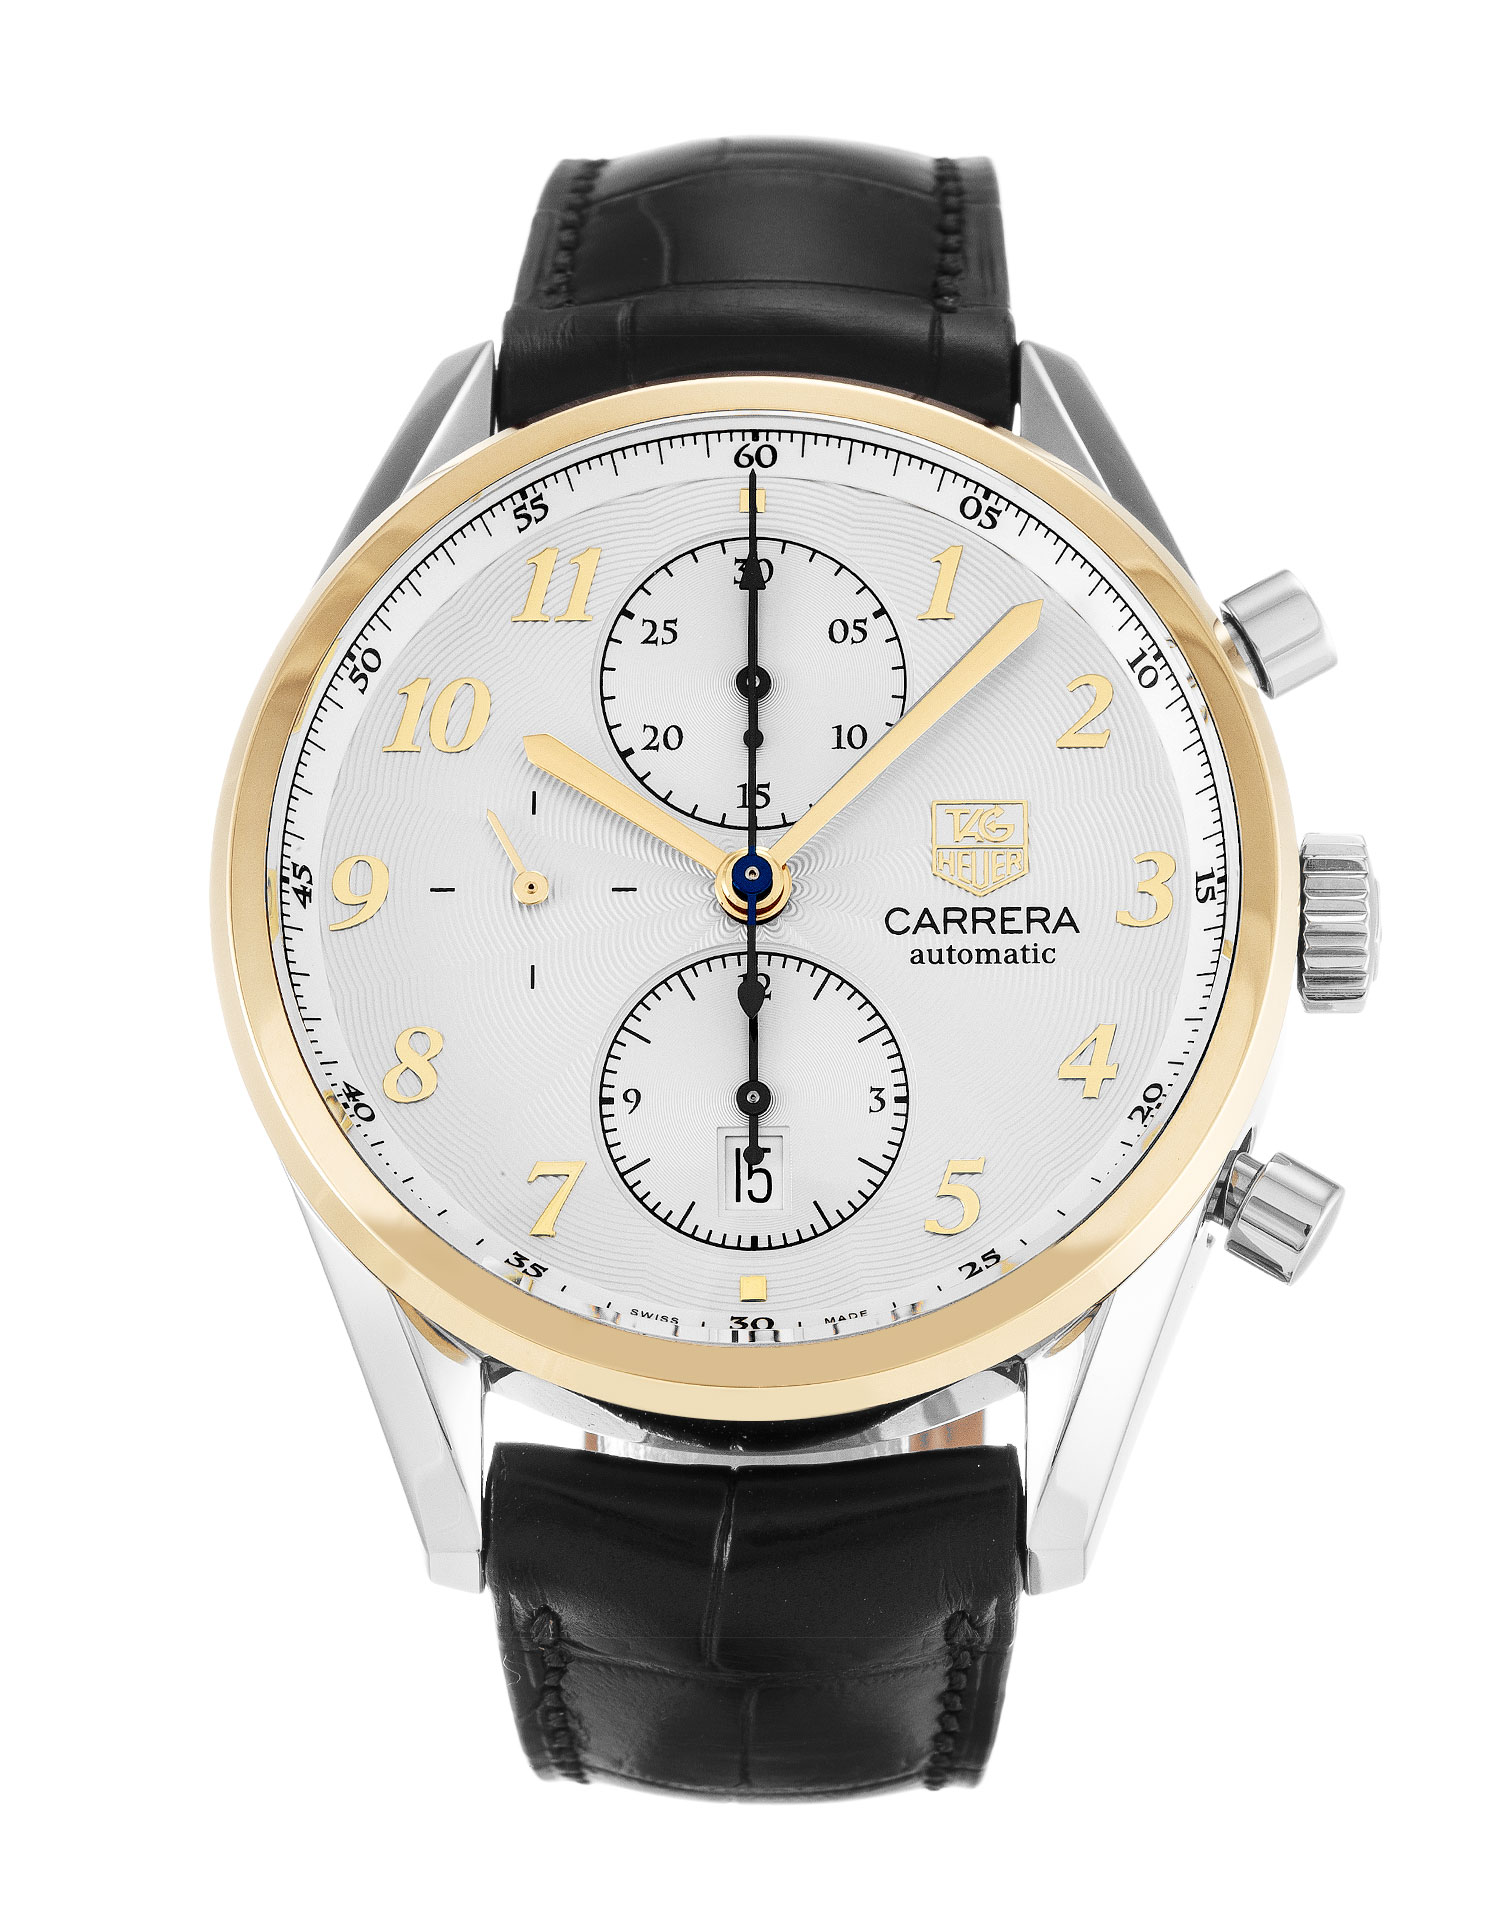 Tag Heuer Carrera Cas2150.Fc6291 Mens 41 Mm Steel & Yellow Gold Case Quartz Movement – iapac.to